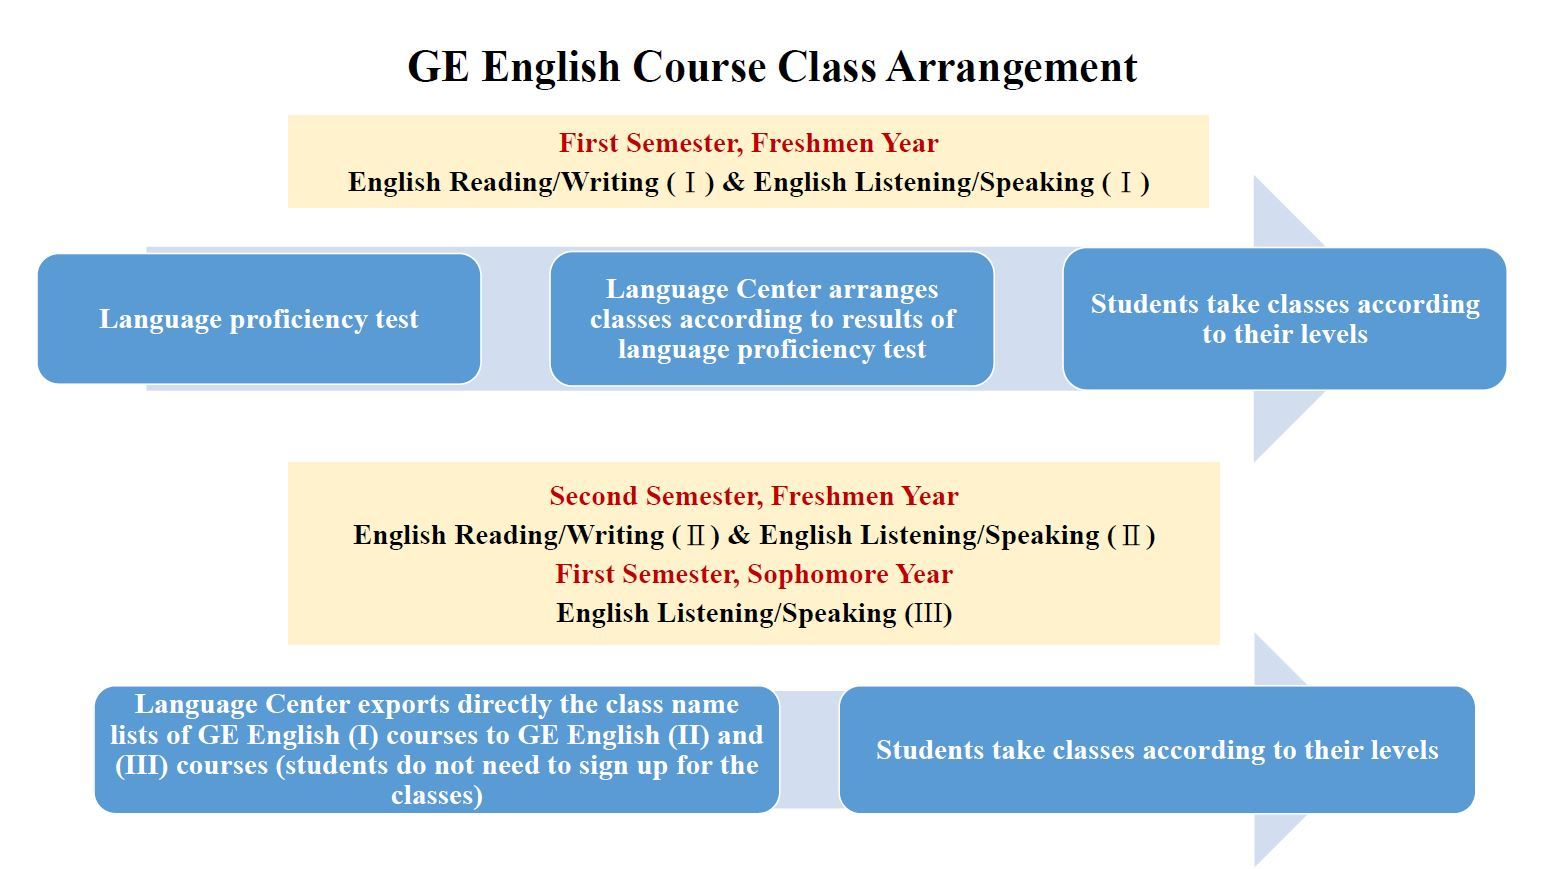 01_GE English Course Class Arrangement